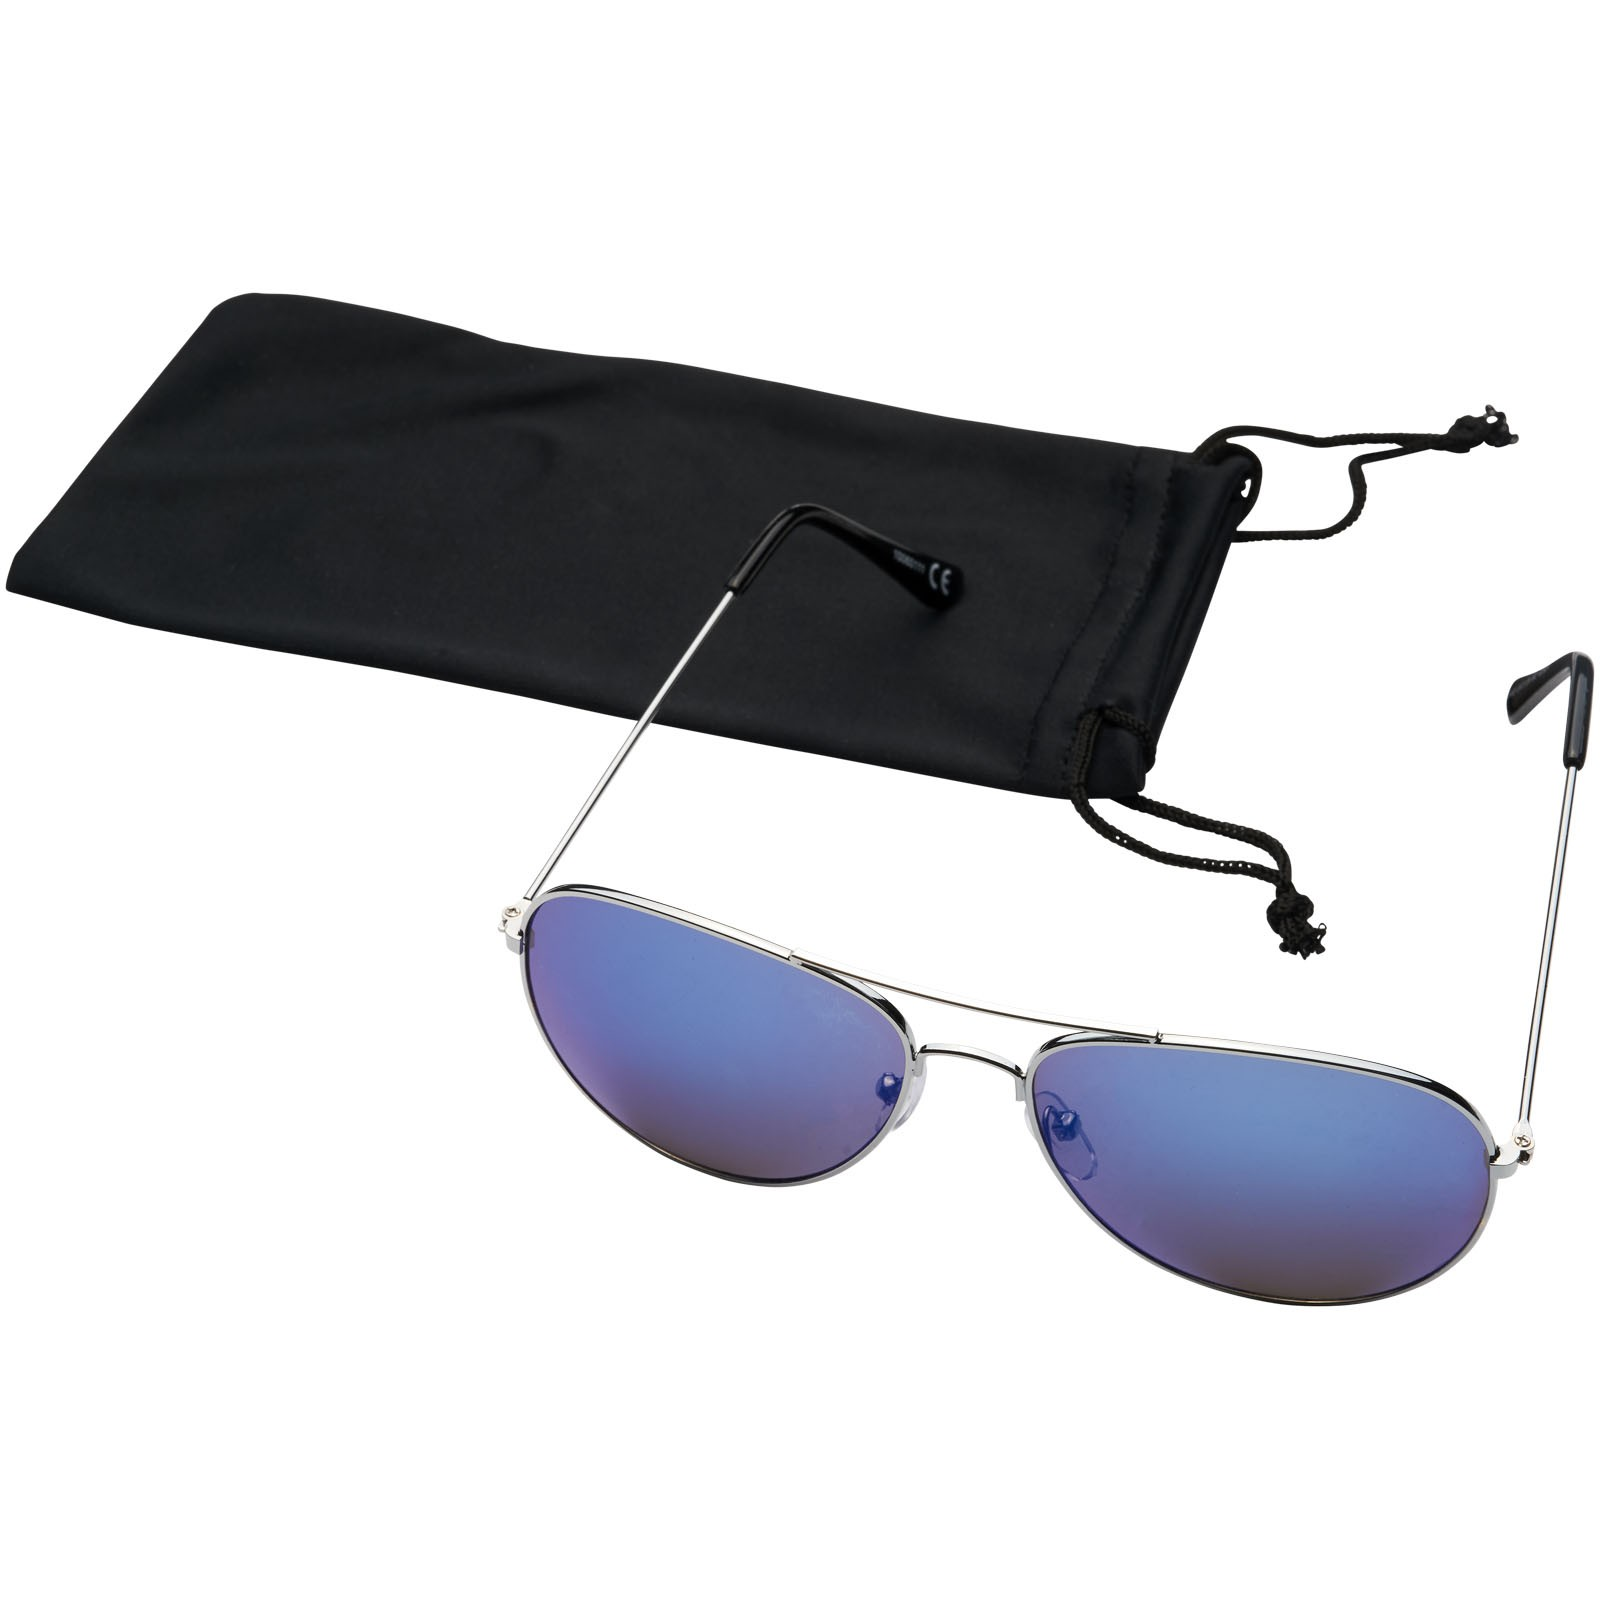 Aviator sunglasses with coloured mirrored lenses - Blue